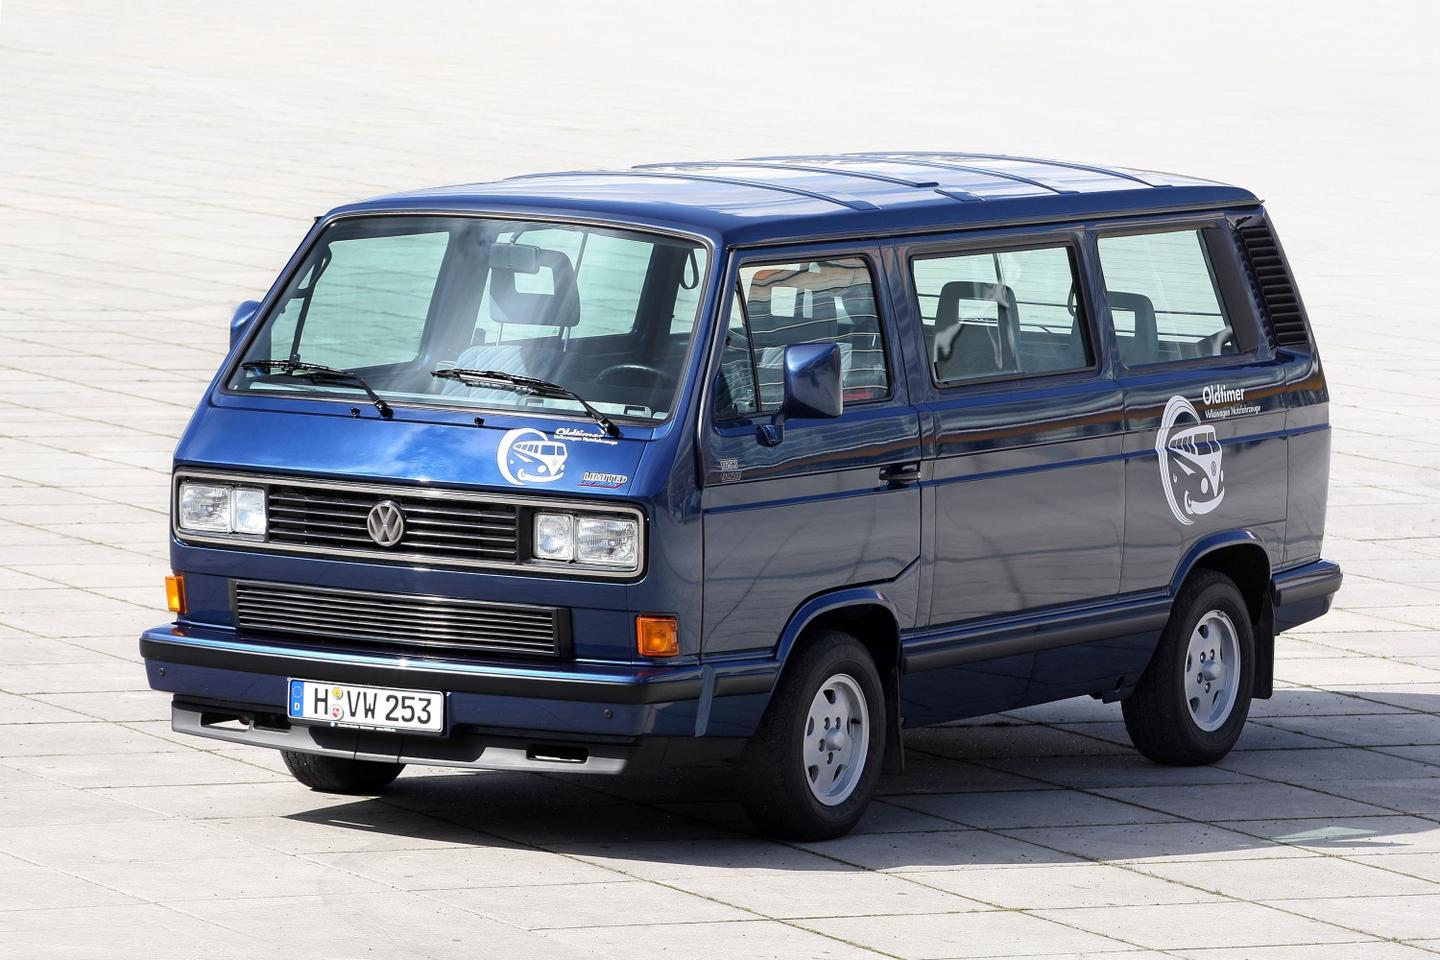 Younger than the Volkswagen Transporter itself, the Multivan launched on the third-generation T3